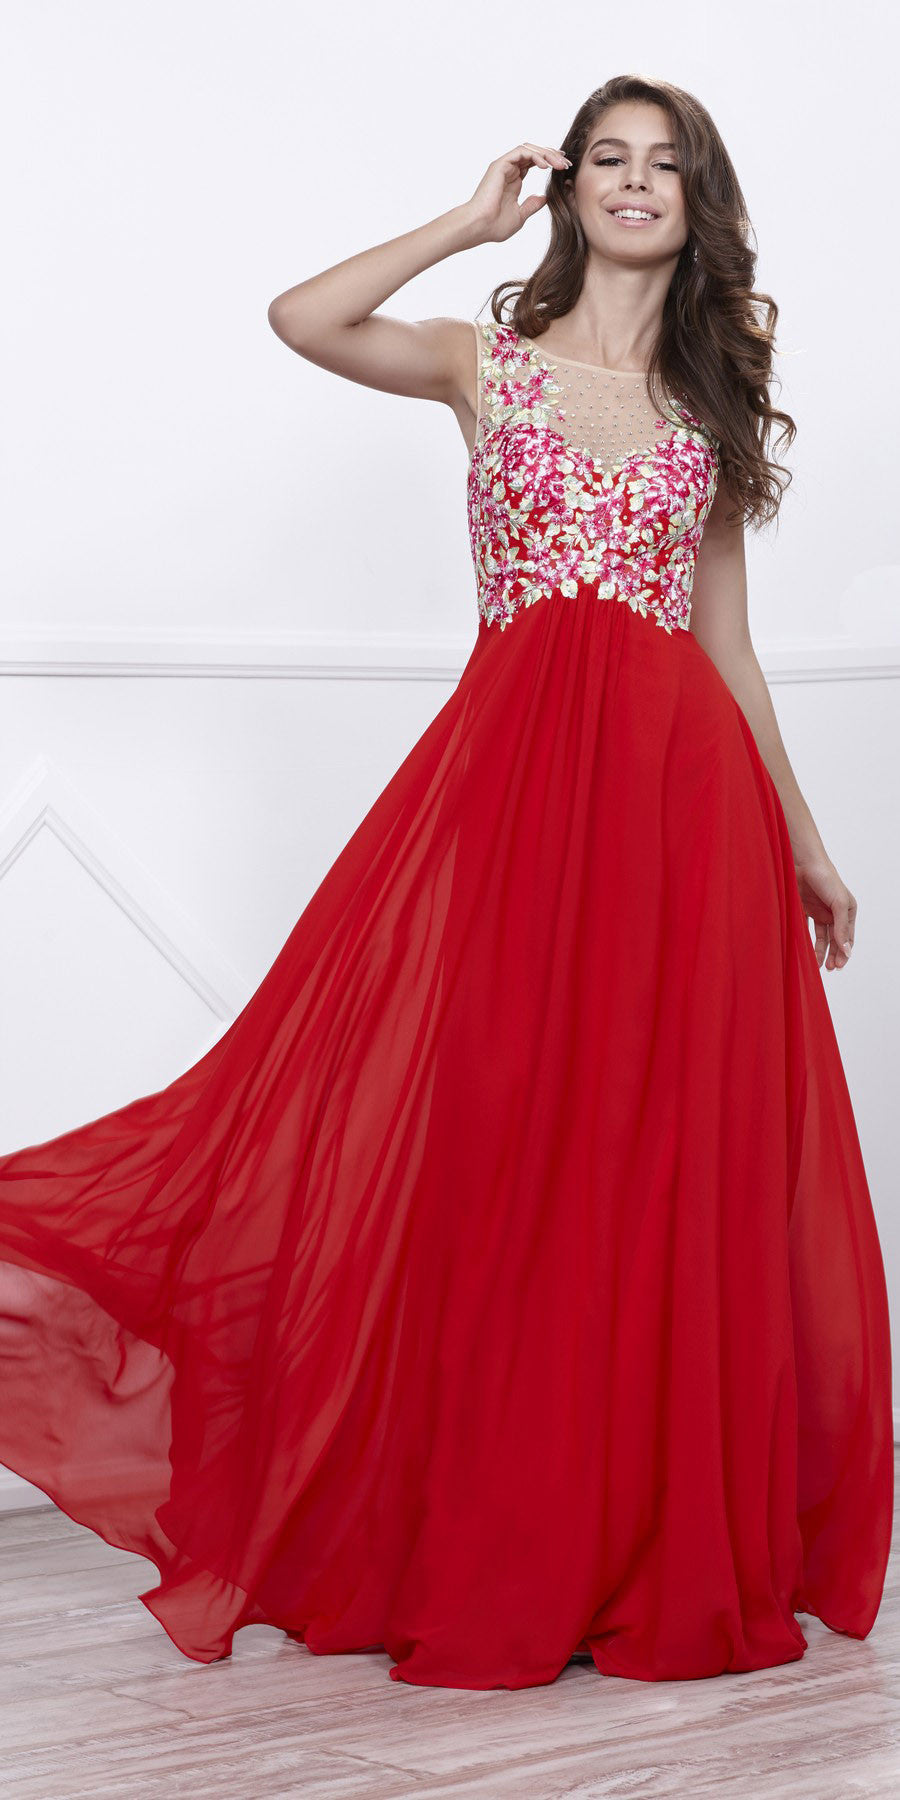 Illusion Red Appliqued Sleeveless Cut-Out Back Formal Dress Long